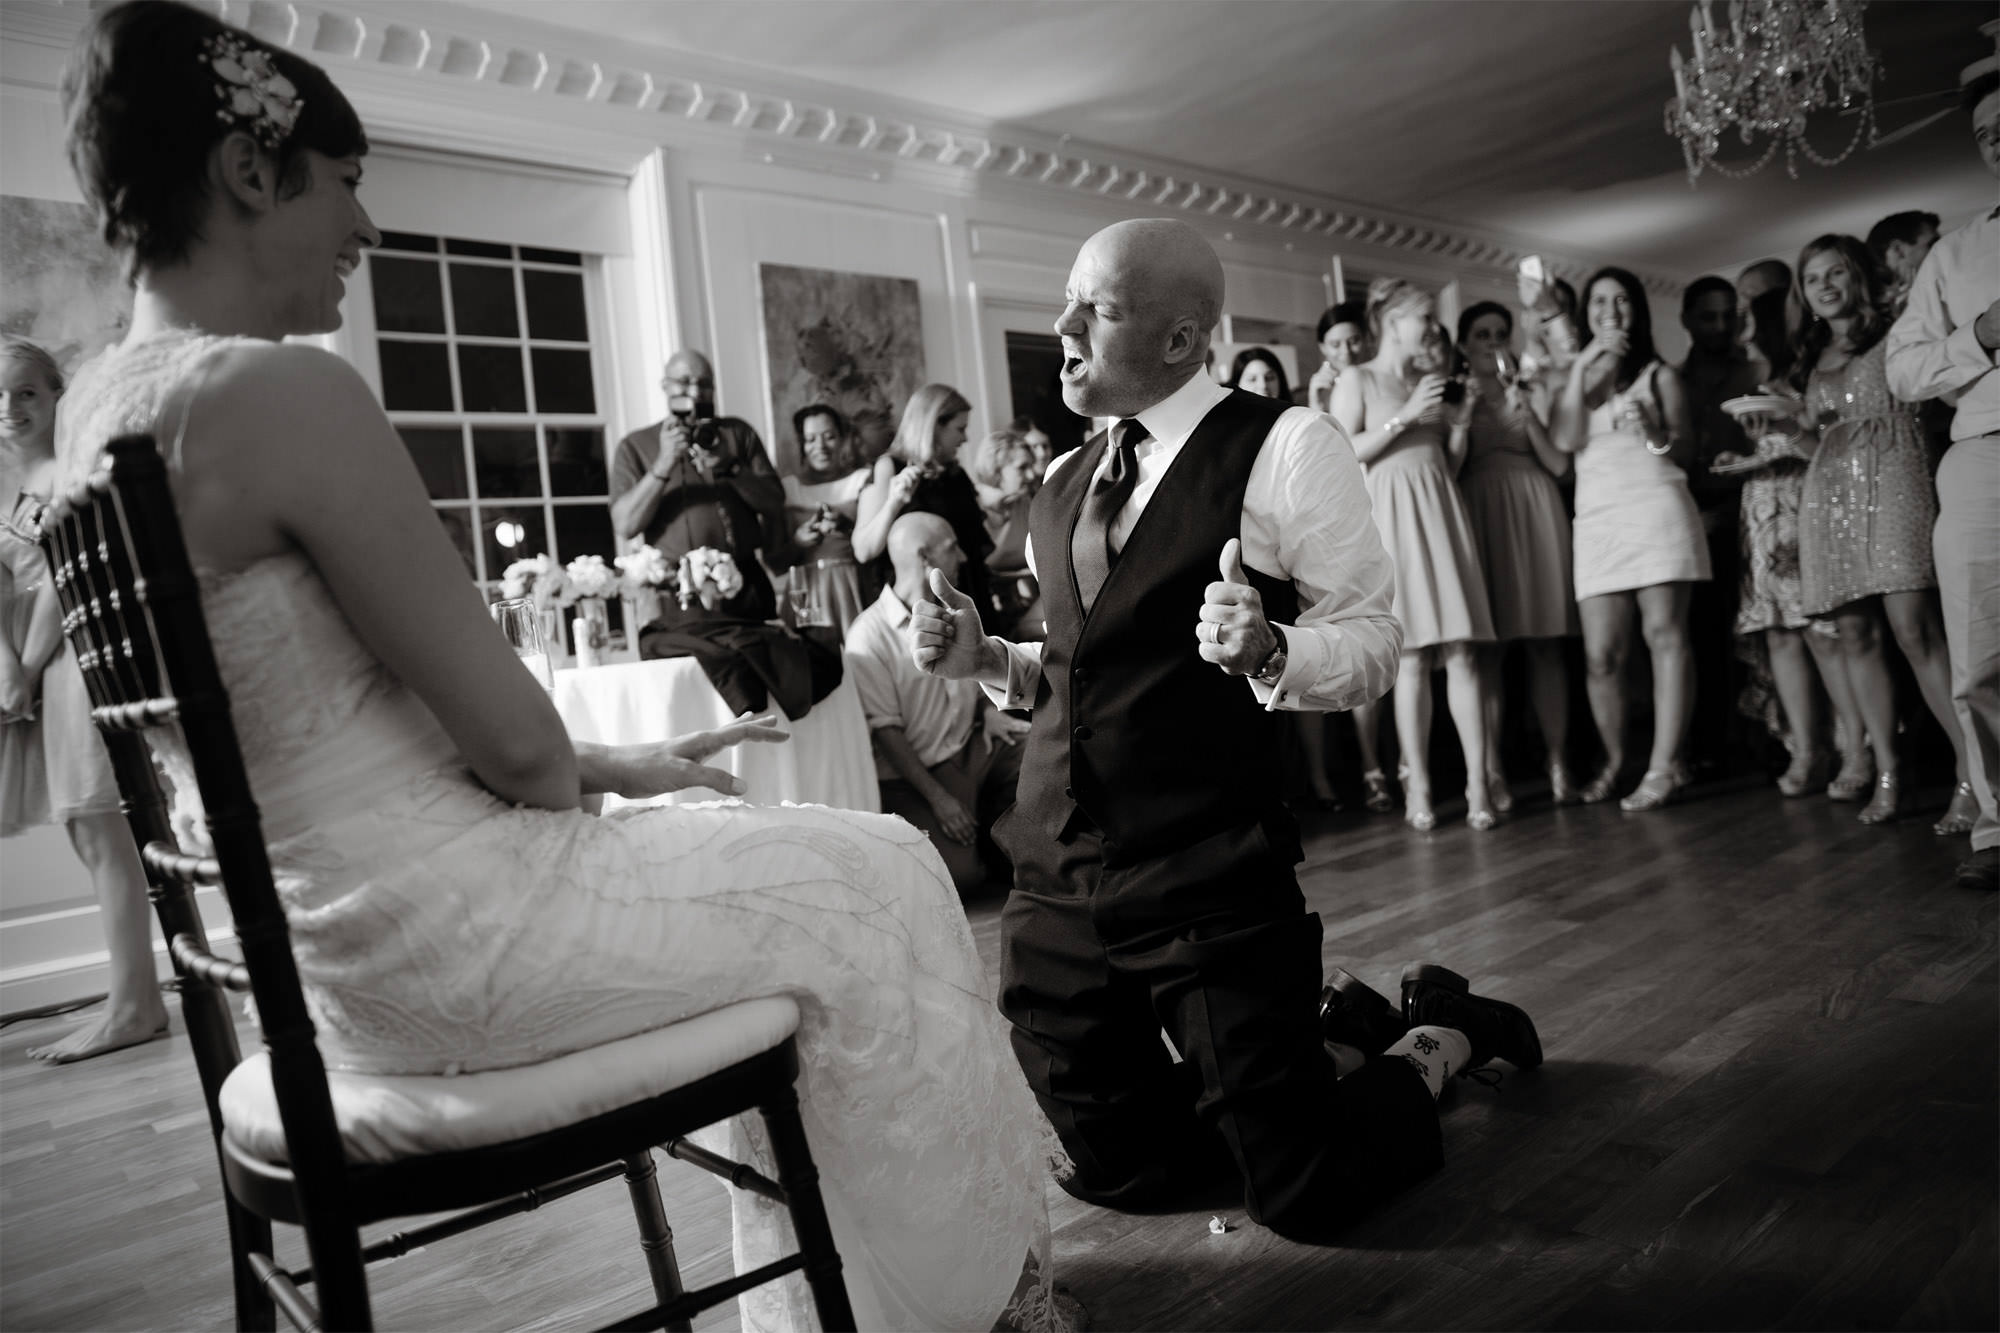 The groom prepares to remove the bride's garter during the wedding reception at River Farm.